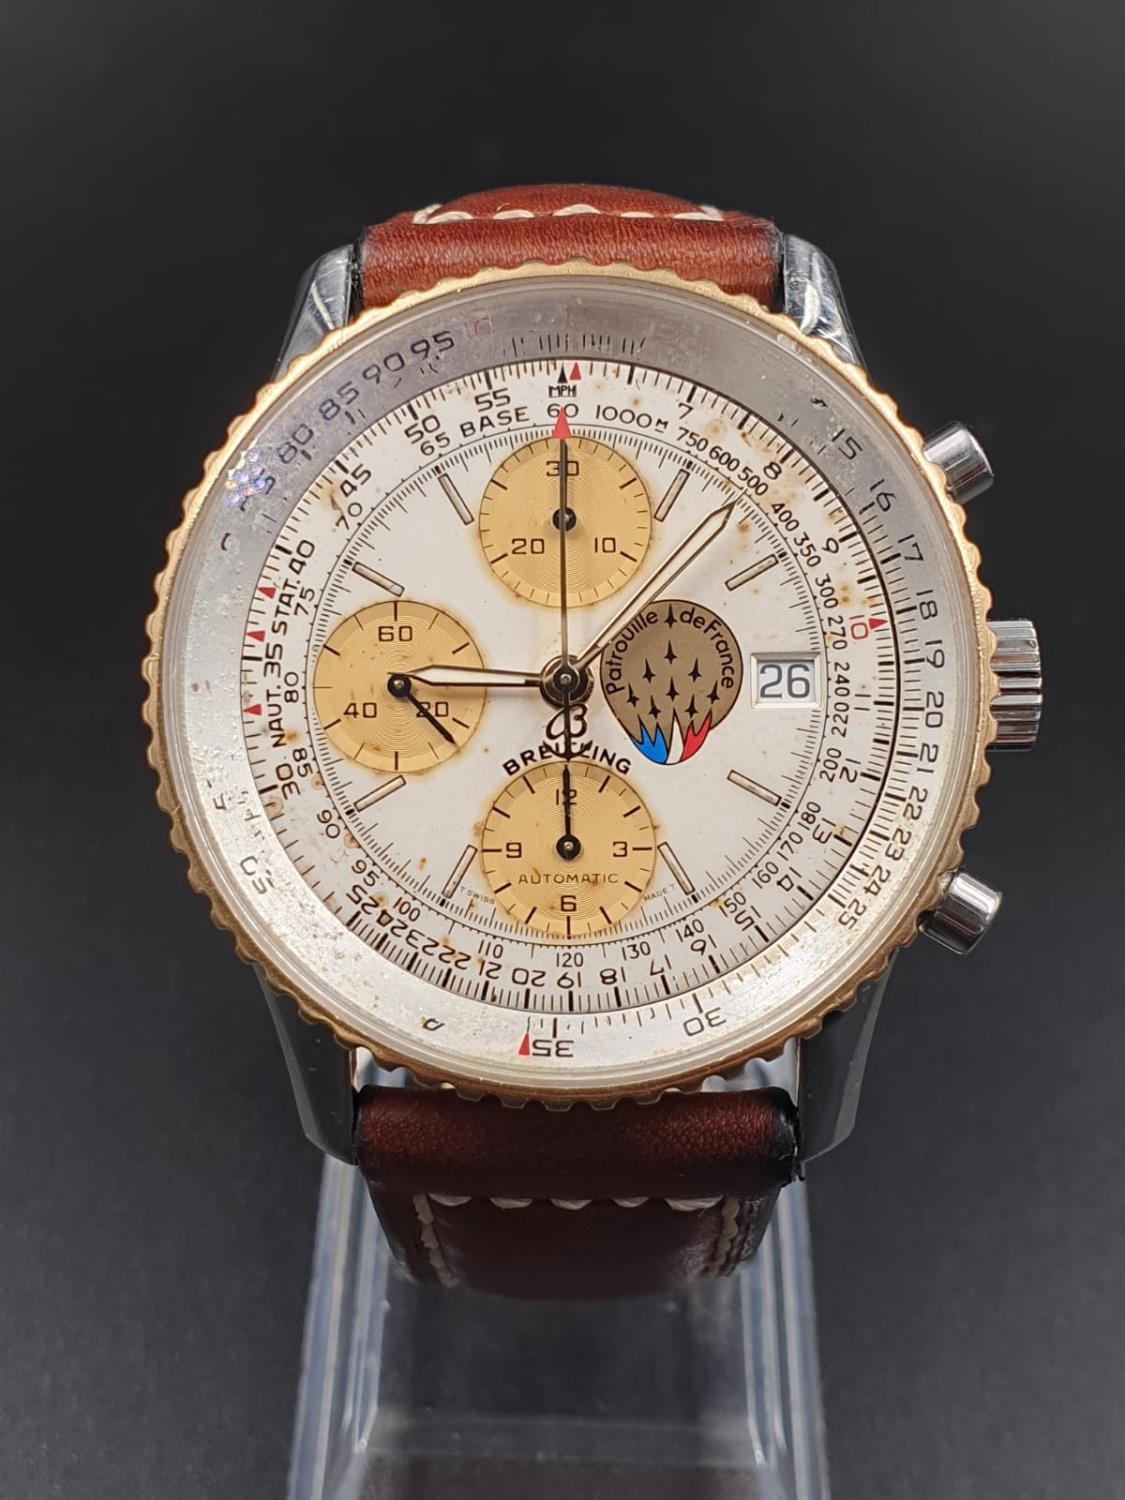 A BREITLING NAVITIMER CHRONOMETER AUTOMATIC MOVEMENT ON A LEATHER STRAP. 42mm